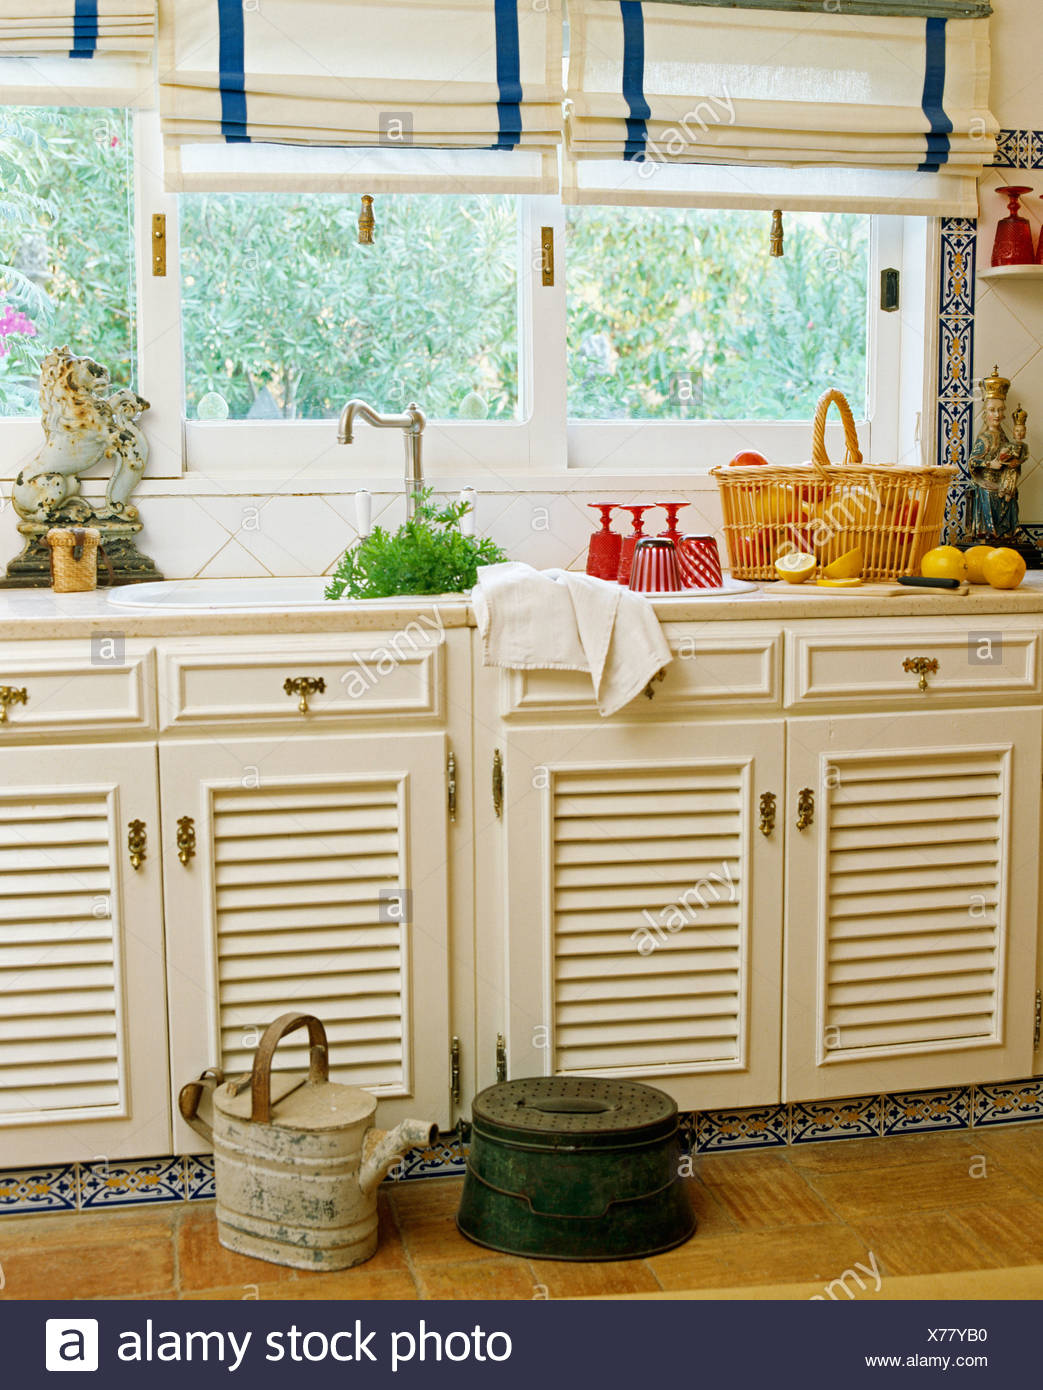 White Linen Blinds On Window Above Sink In White Portuguese Kitchen With Louvre Doors On Fitted Cupboards Stock Photo Alamy